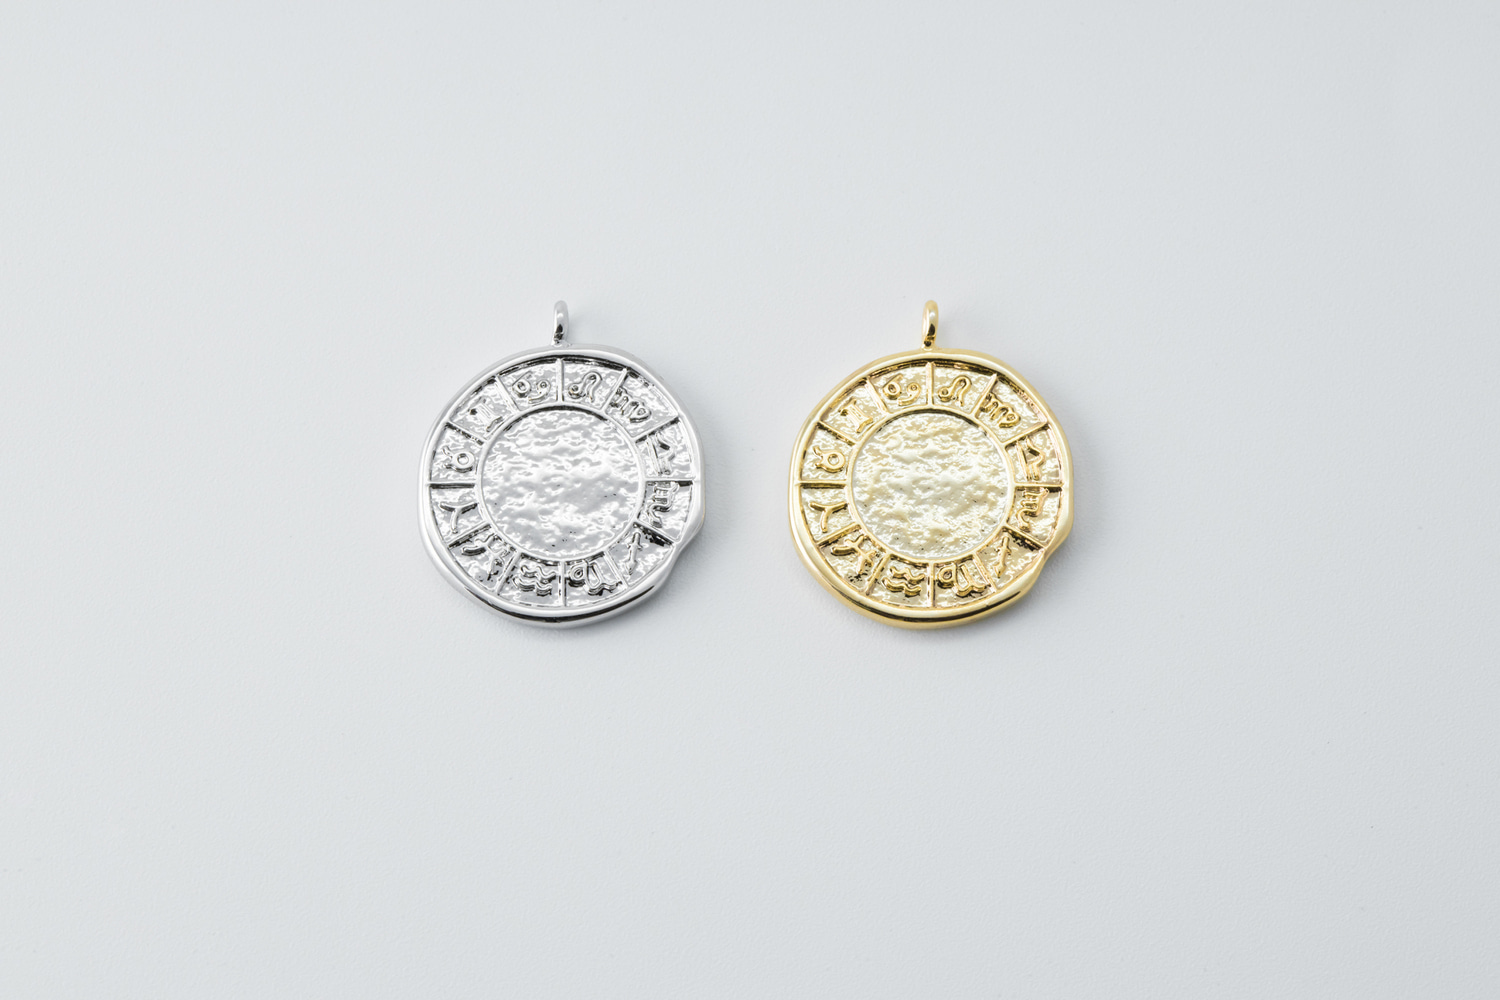 [Q5-VC1] Ancient round charm, Brass, Nickel free, Antique pendant, Simple charm, Necklace makings, Jewelry making supplies, 1 piece